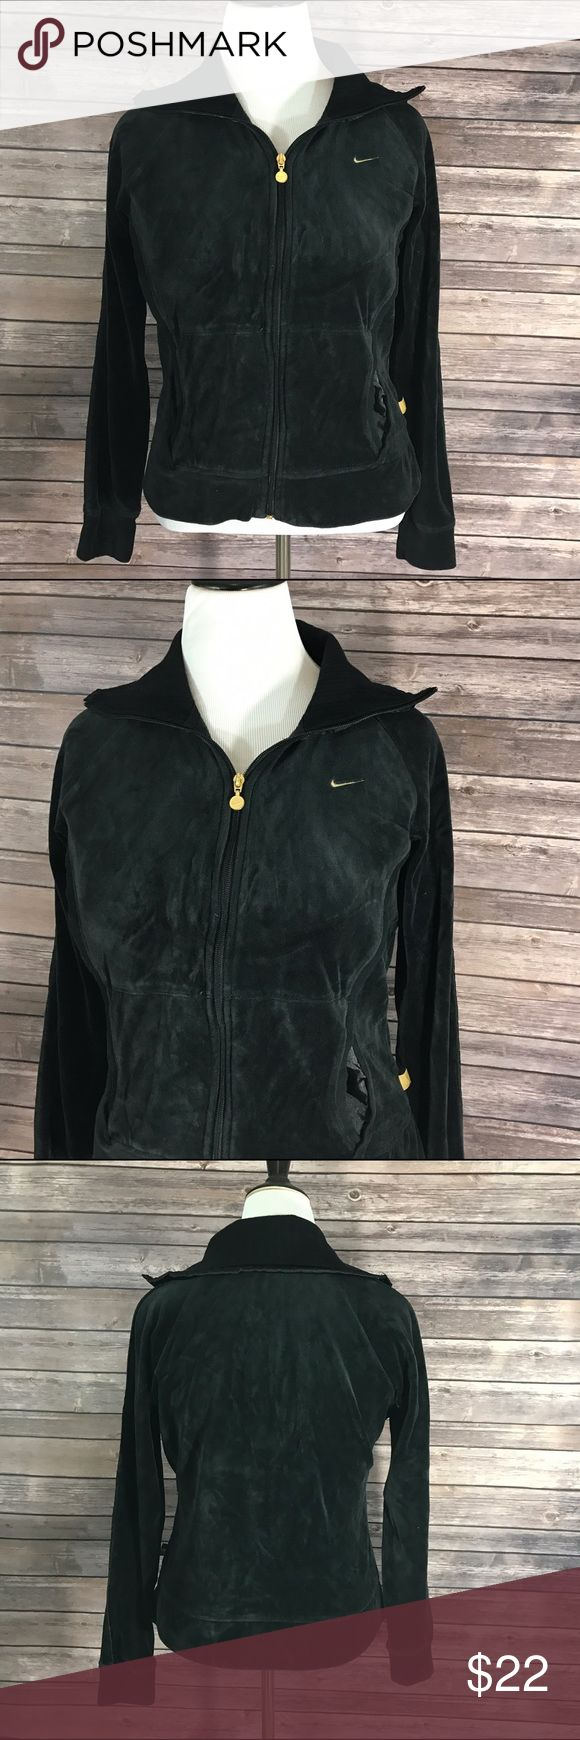 Nike Zip Up Velour Jacket Black Athletic Warm Up Measurements: (in inches) - Underarm to underarm: 21 - Length: 23 Good, gently used condition Nike Jackets & Coats